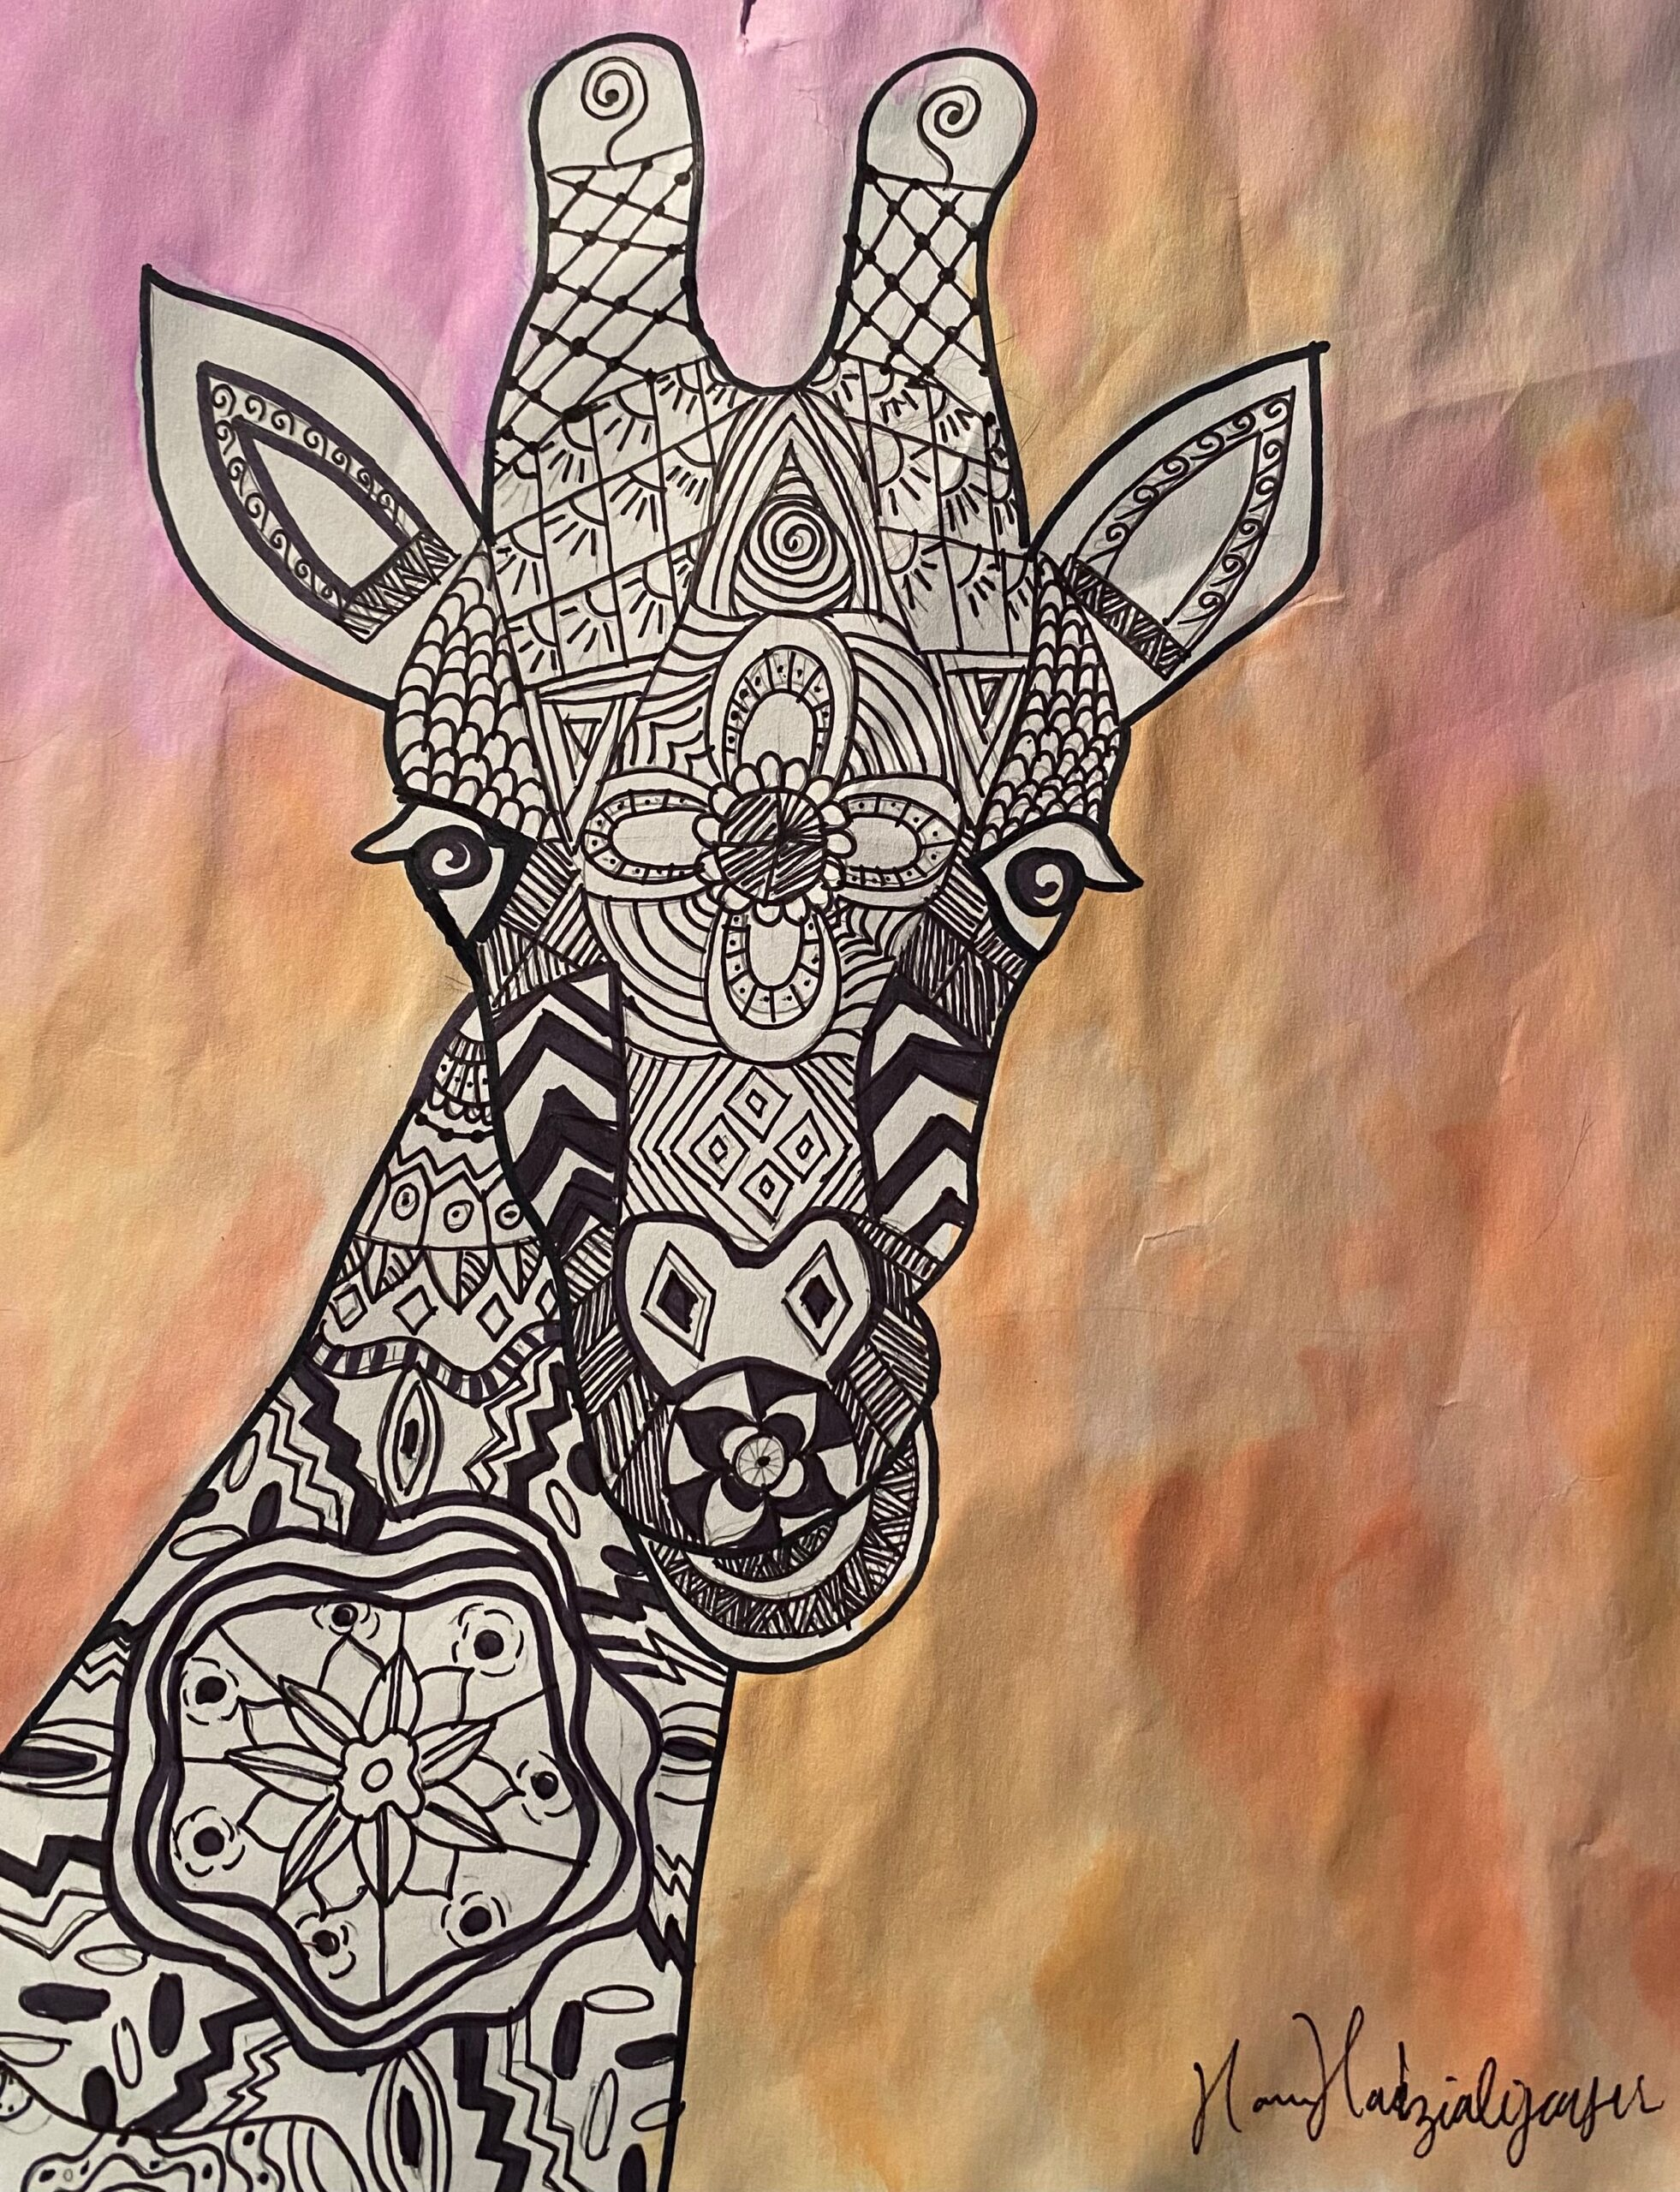 abstract pen and watercolor drawing of giraffe